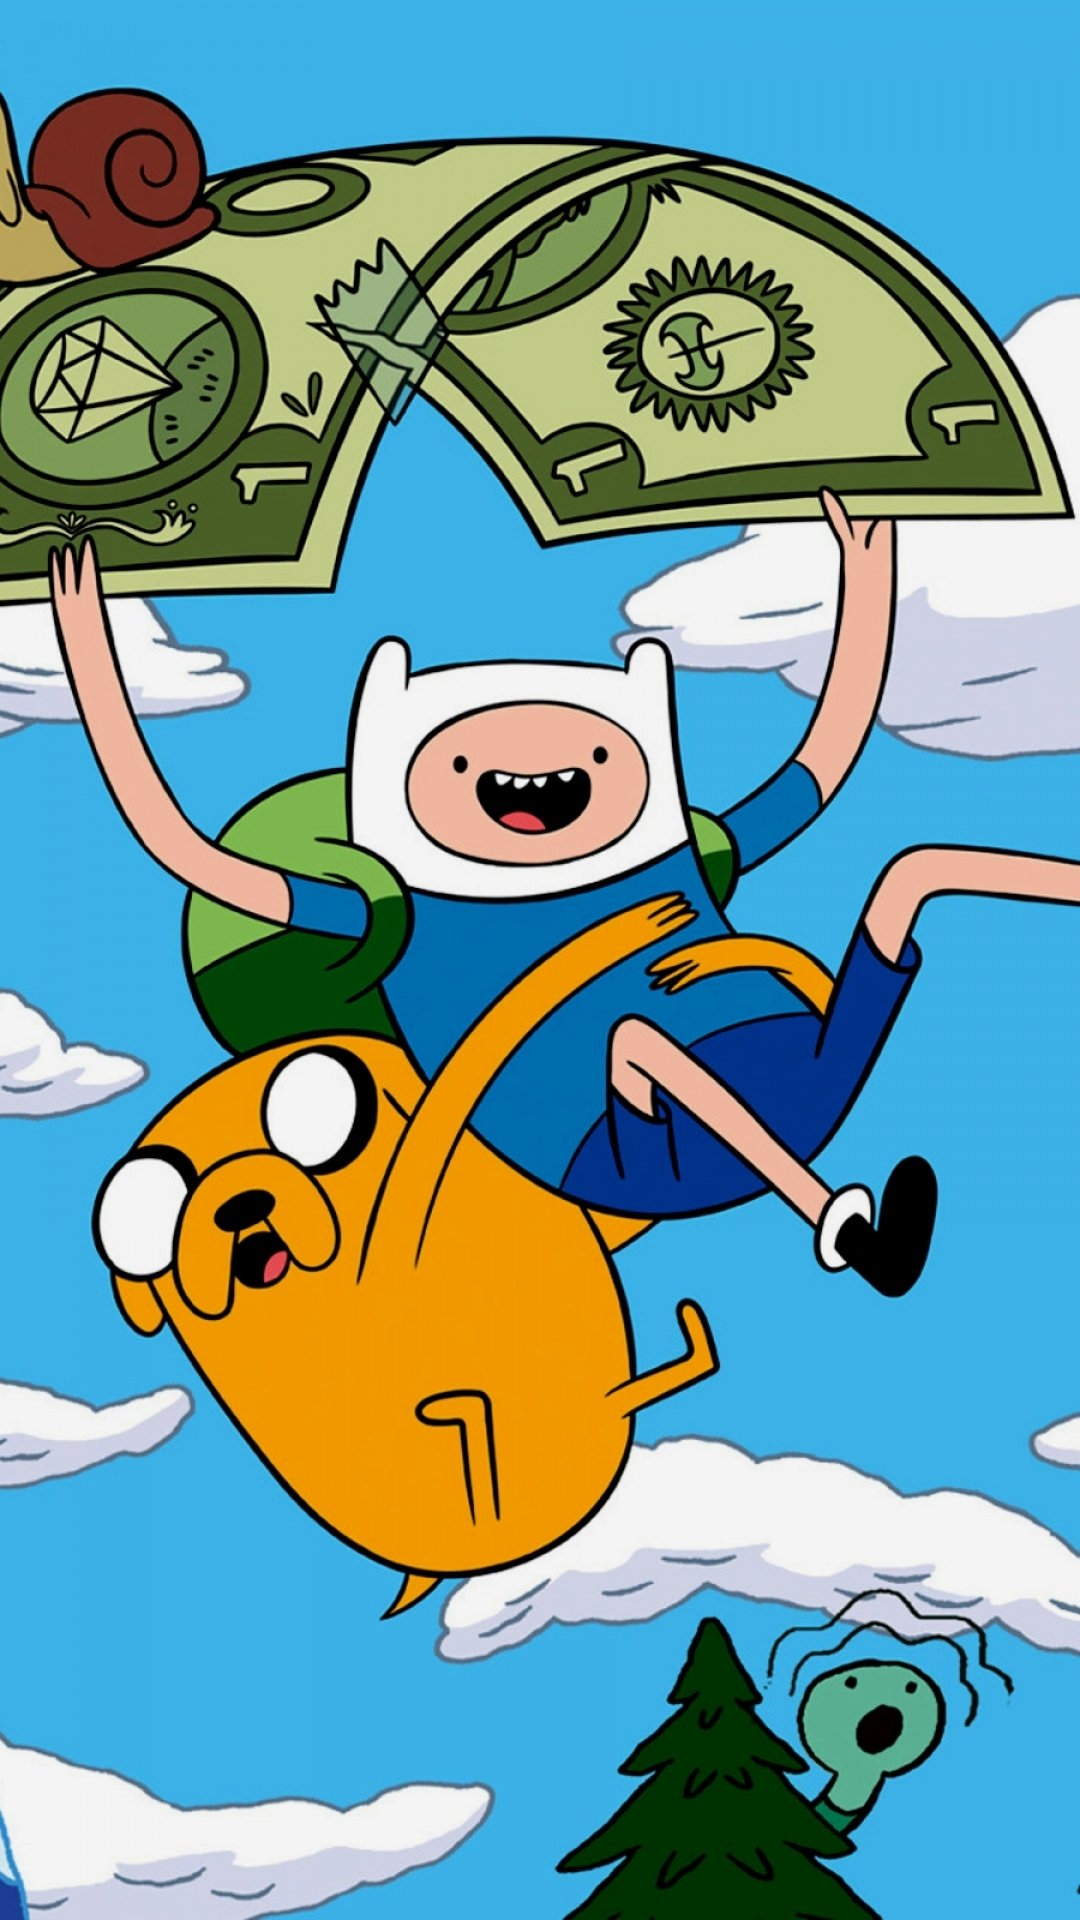 1080x1920px adventure time iphone wallpaper wallpapersafari adventure time iphone wallpaper voltagebd Choice Image